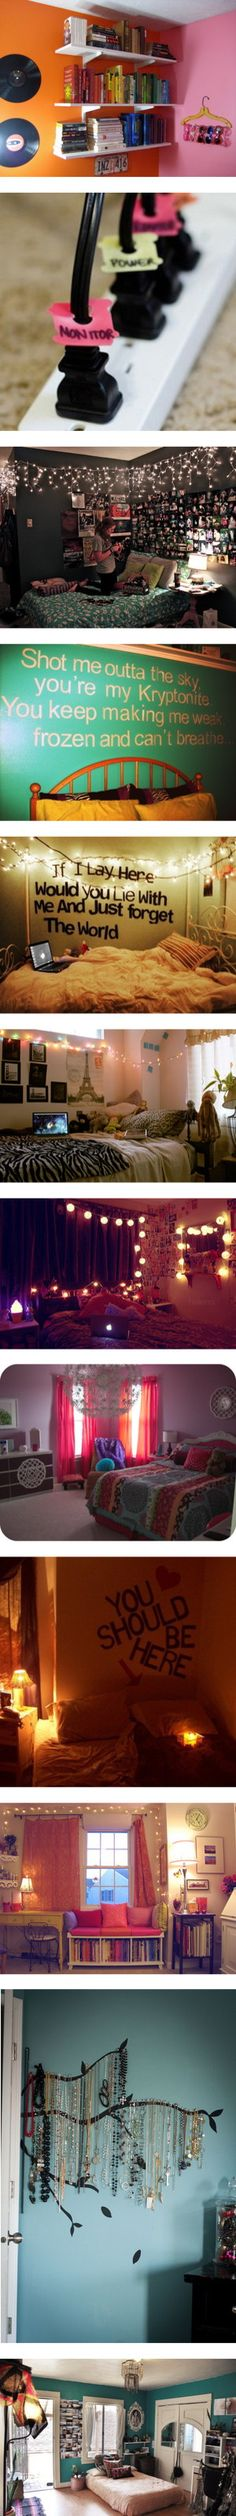 """""""room ideassssss"""" by memzo10 ❤ liked on Polyvore"""